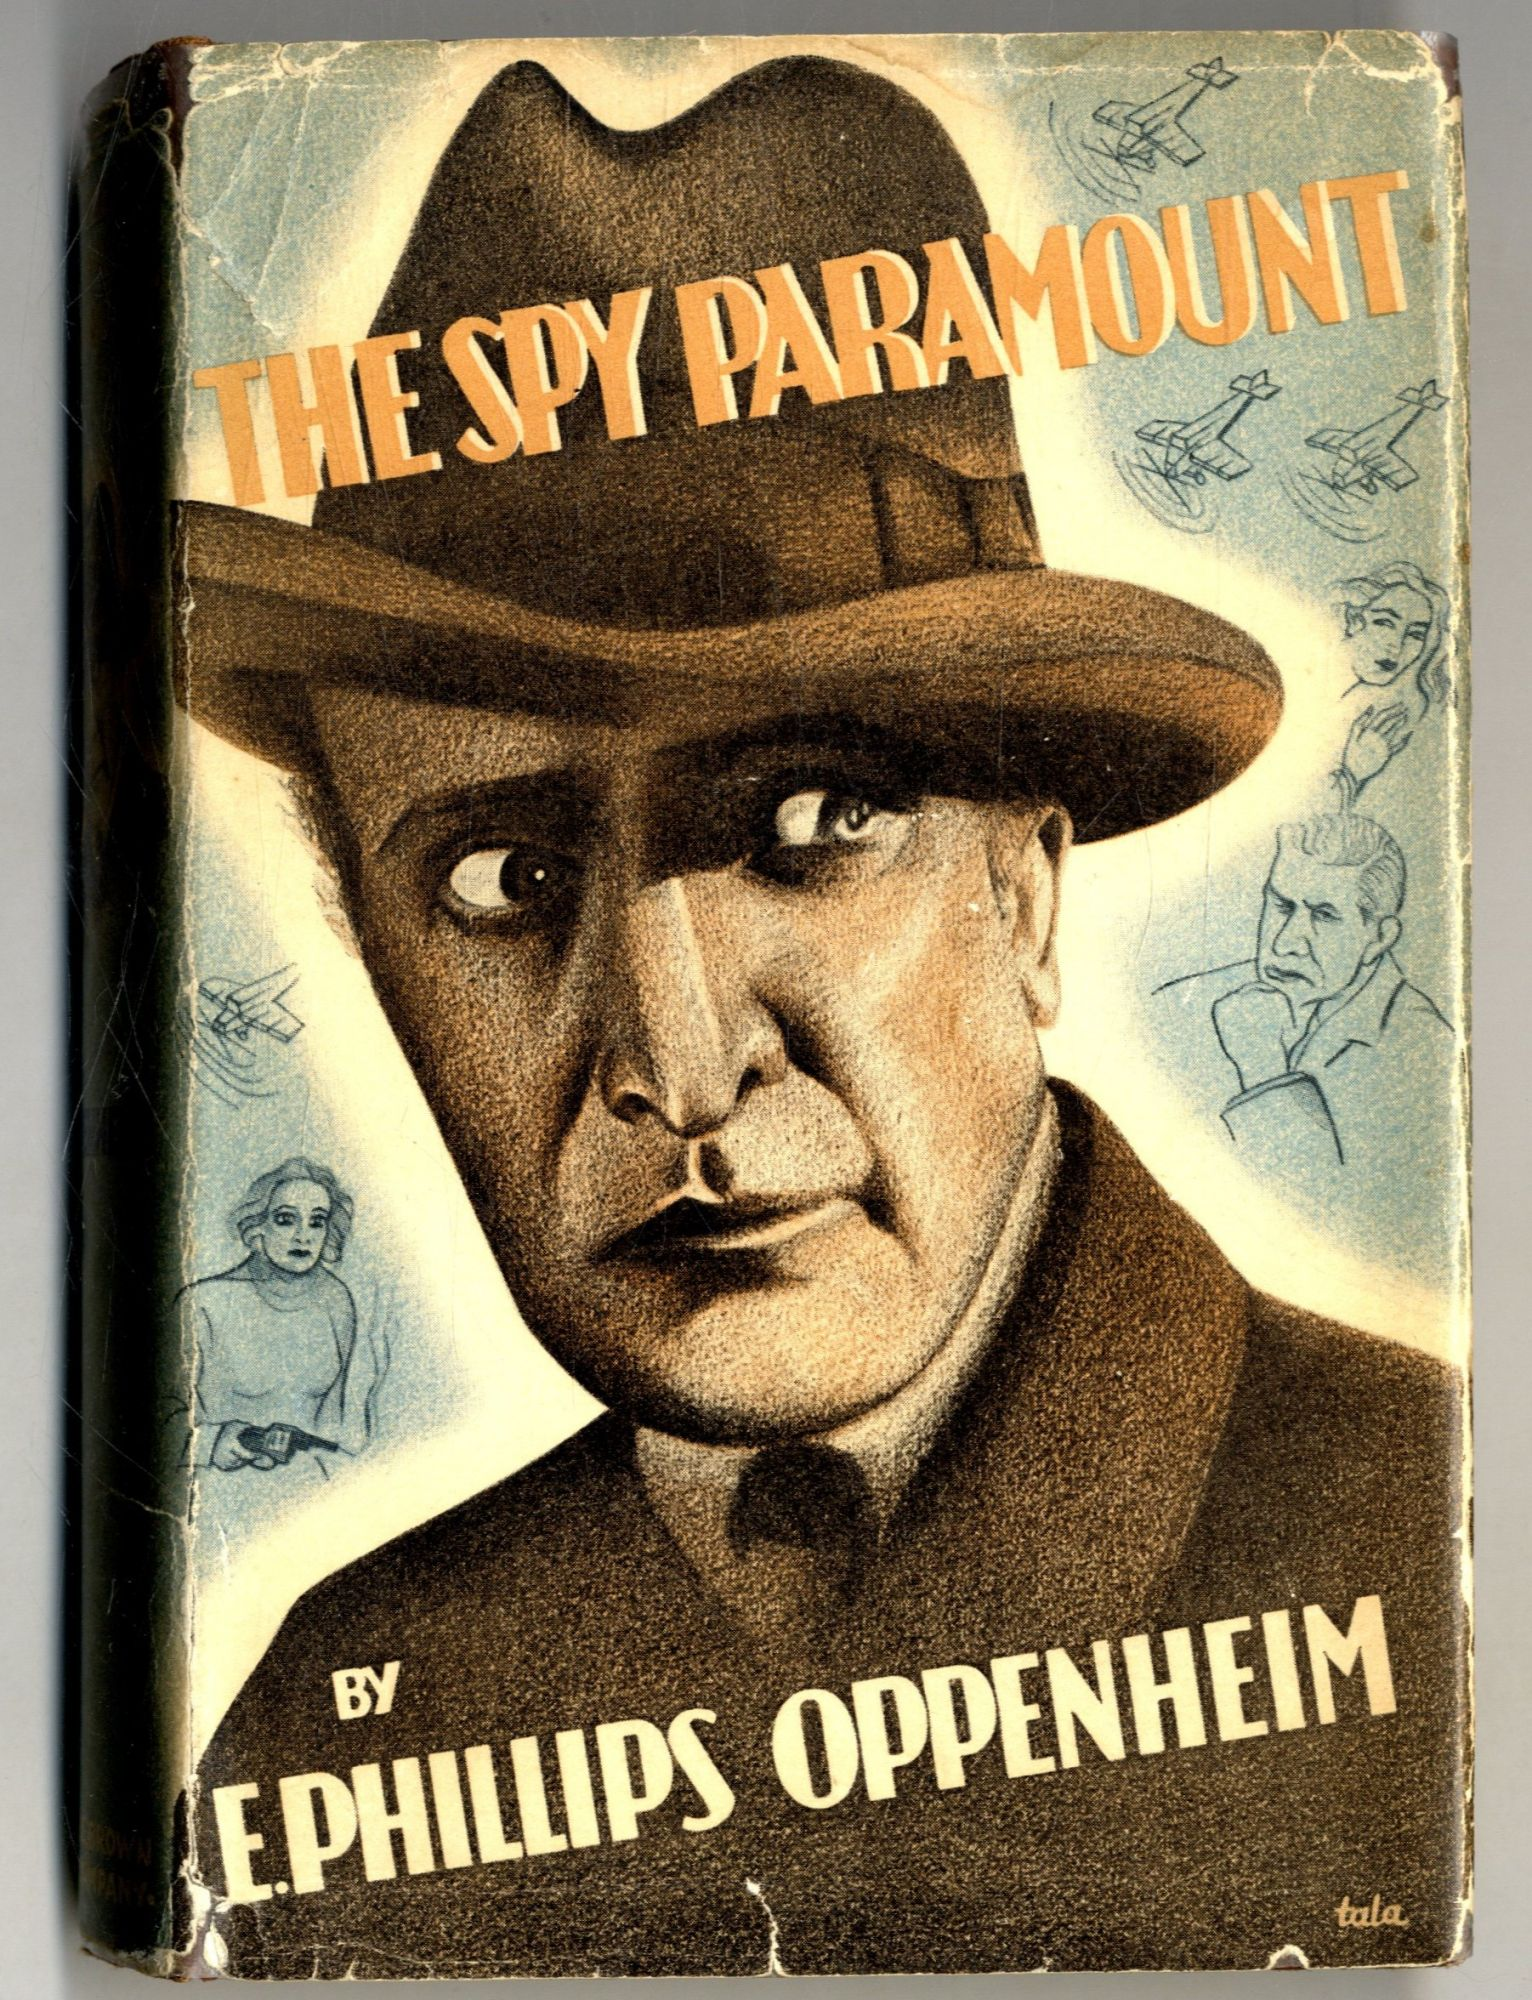 The Spy Paramount - 1st Edition/1st Printing. E. Phillips Oppenheim.